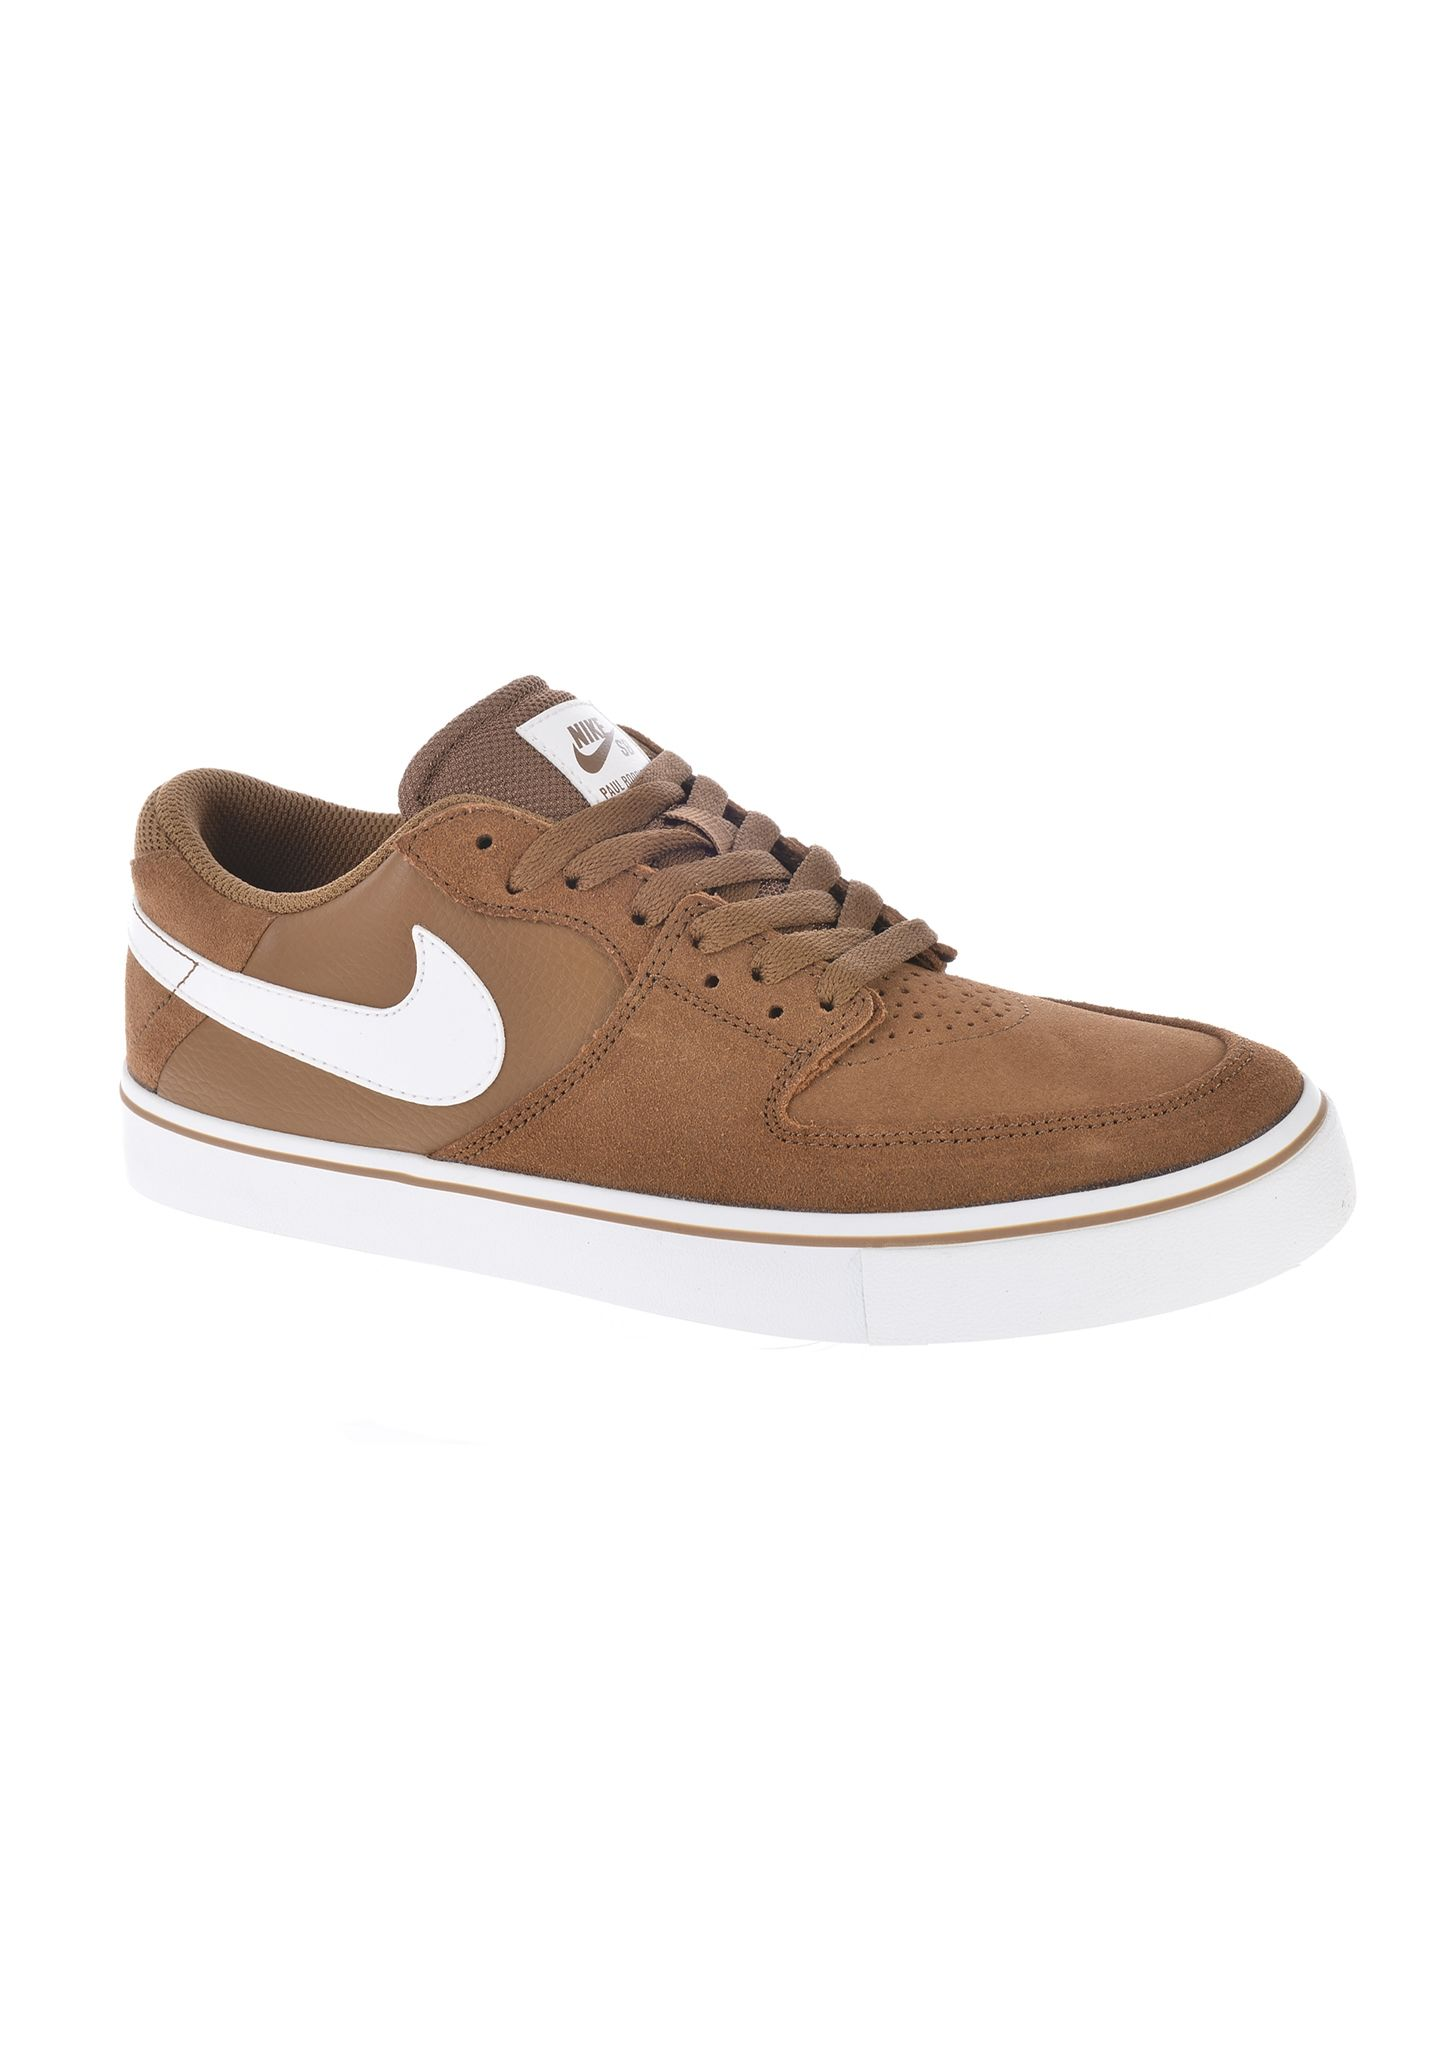 premium selection 2dcc8 44e32 nike paul rodriguez 7 vr